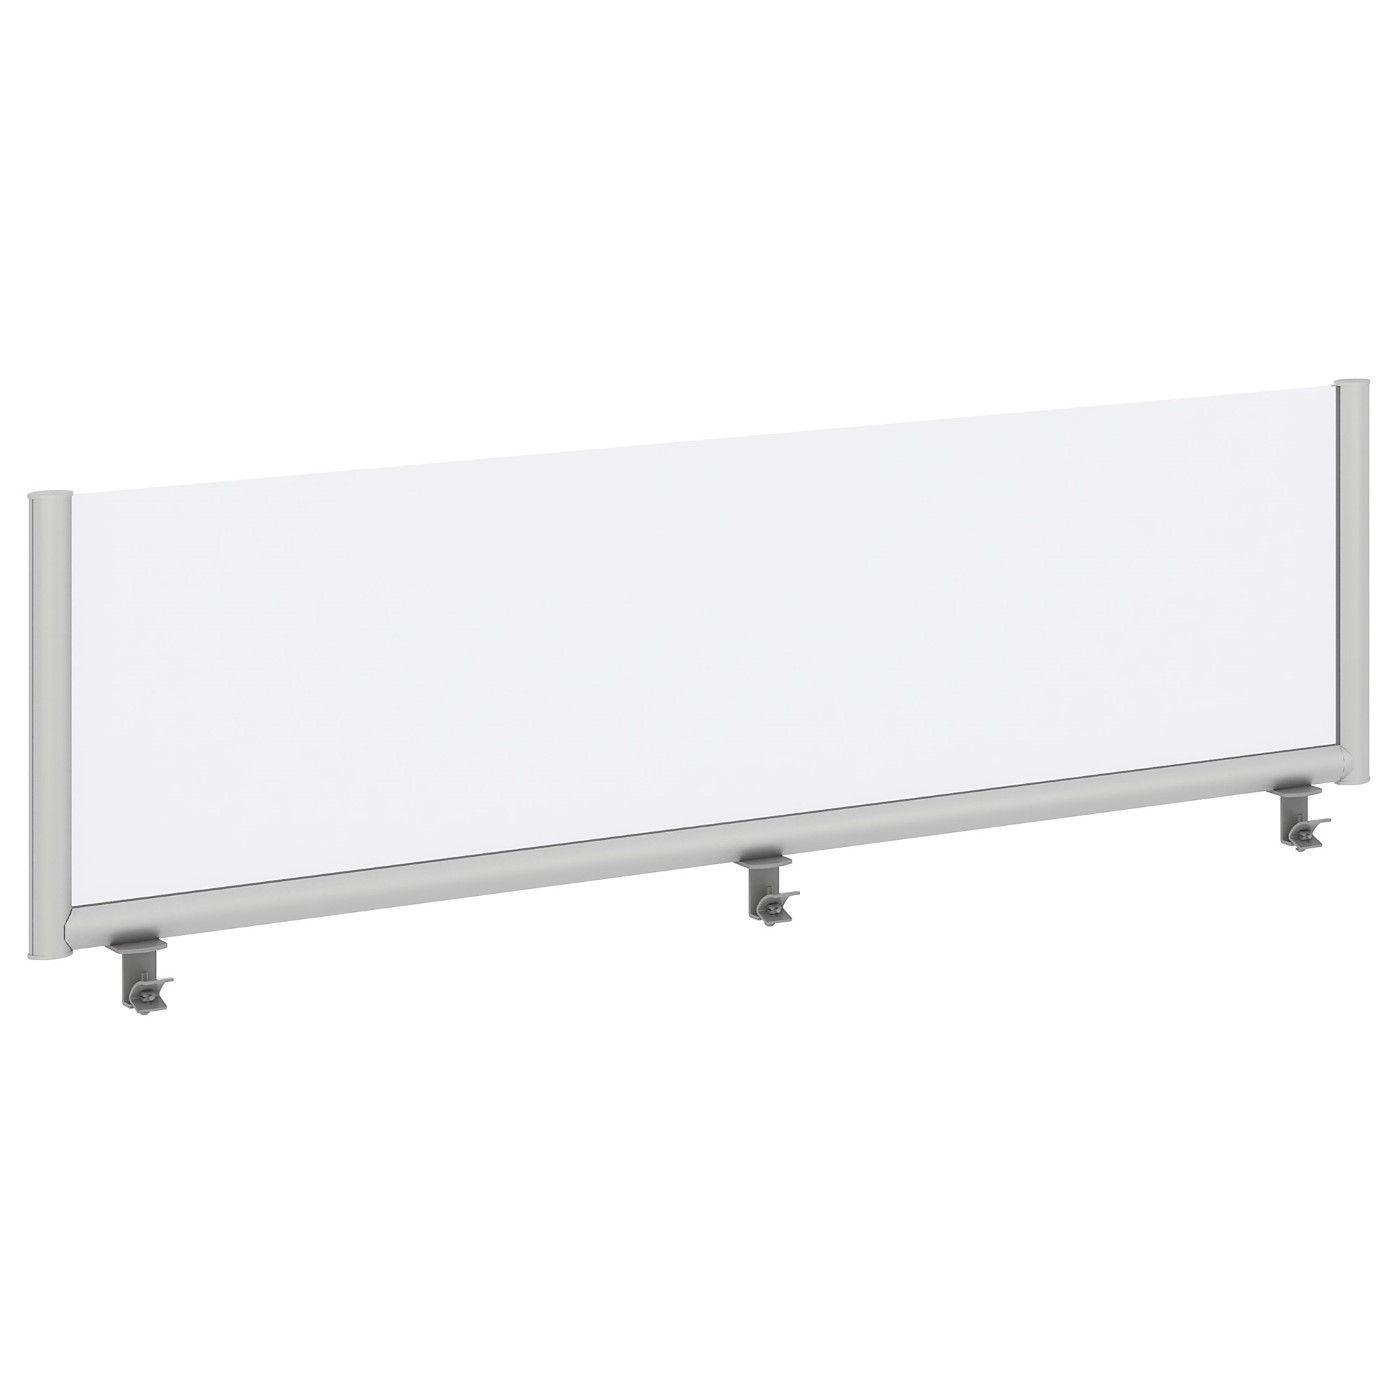 BUSH BUSINESS FURNITURE 72W DESK DIVIDER PRIVACY PANEL. FREE SHIPPING SALE DEDUCT 10% MORE ENTER '10percent' IN COUPON CODE BOX WHILE CHECKING OUT. ENDS 5-31-20.